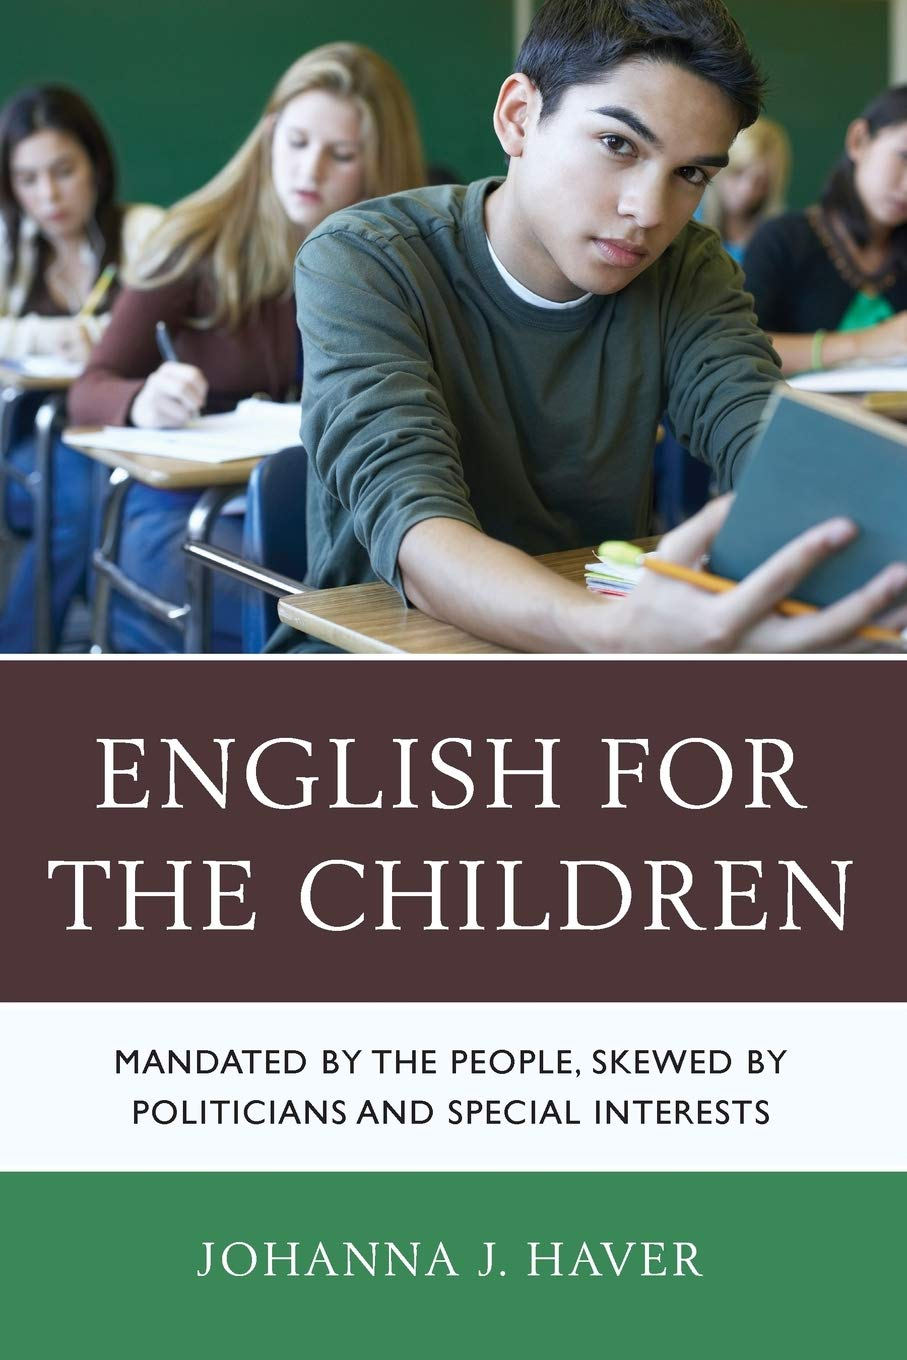 English for the Children: Mandated by the People, Skewed by ...